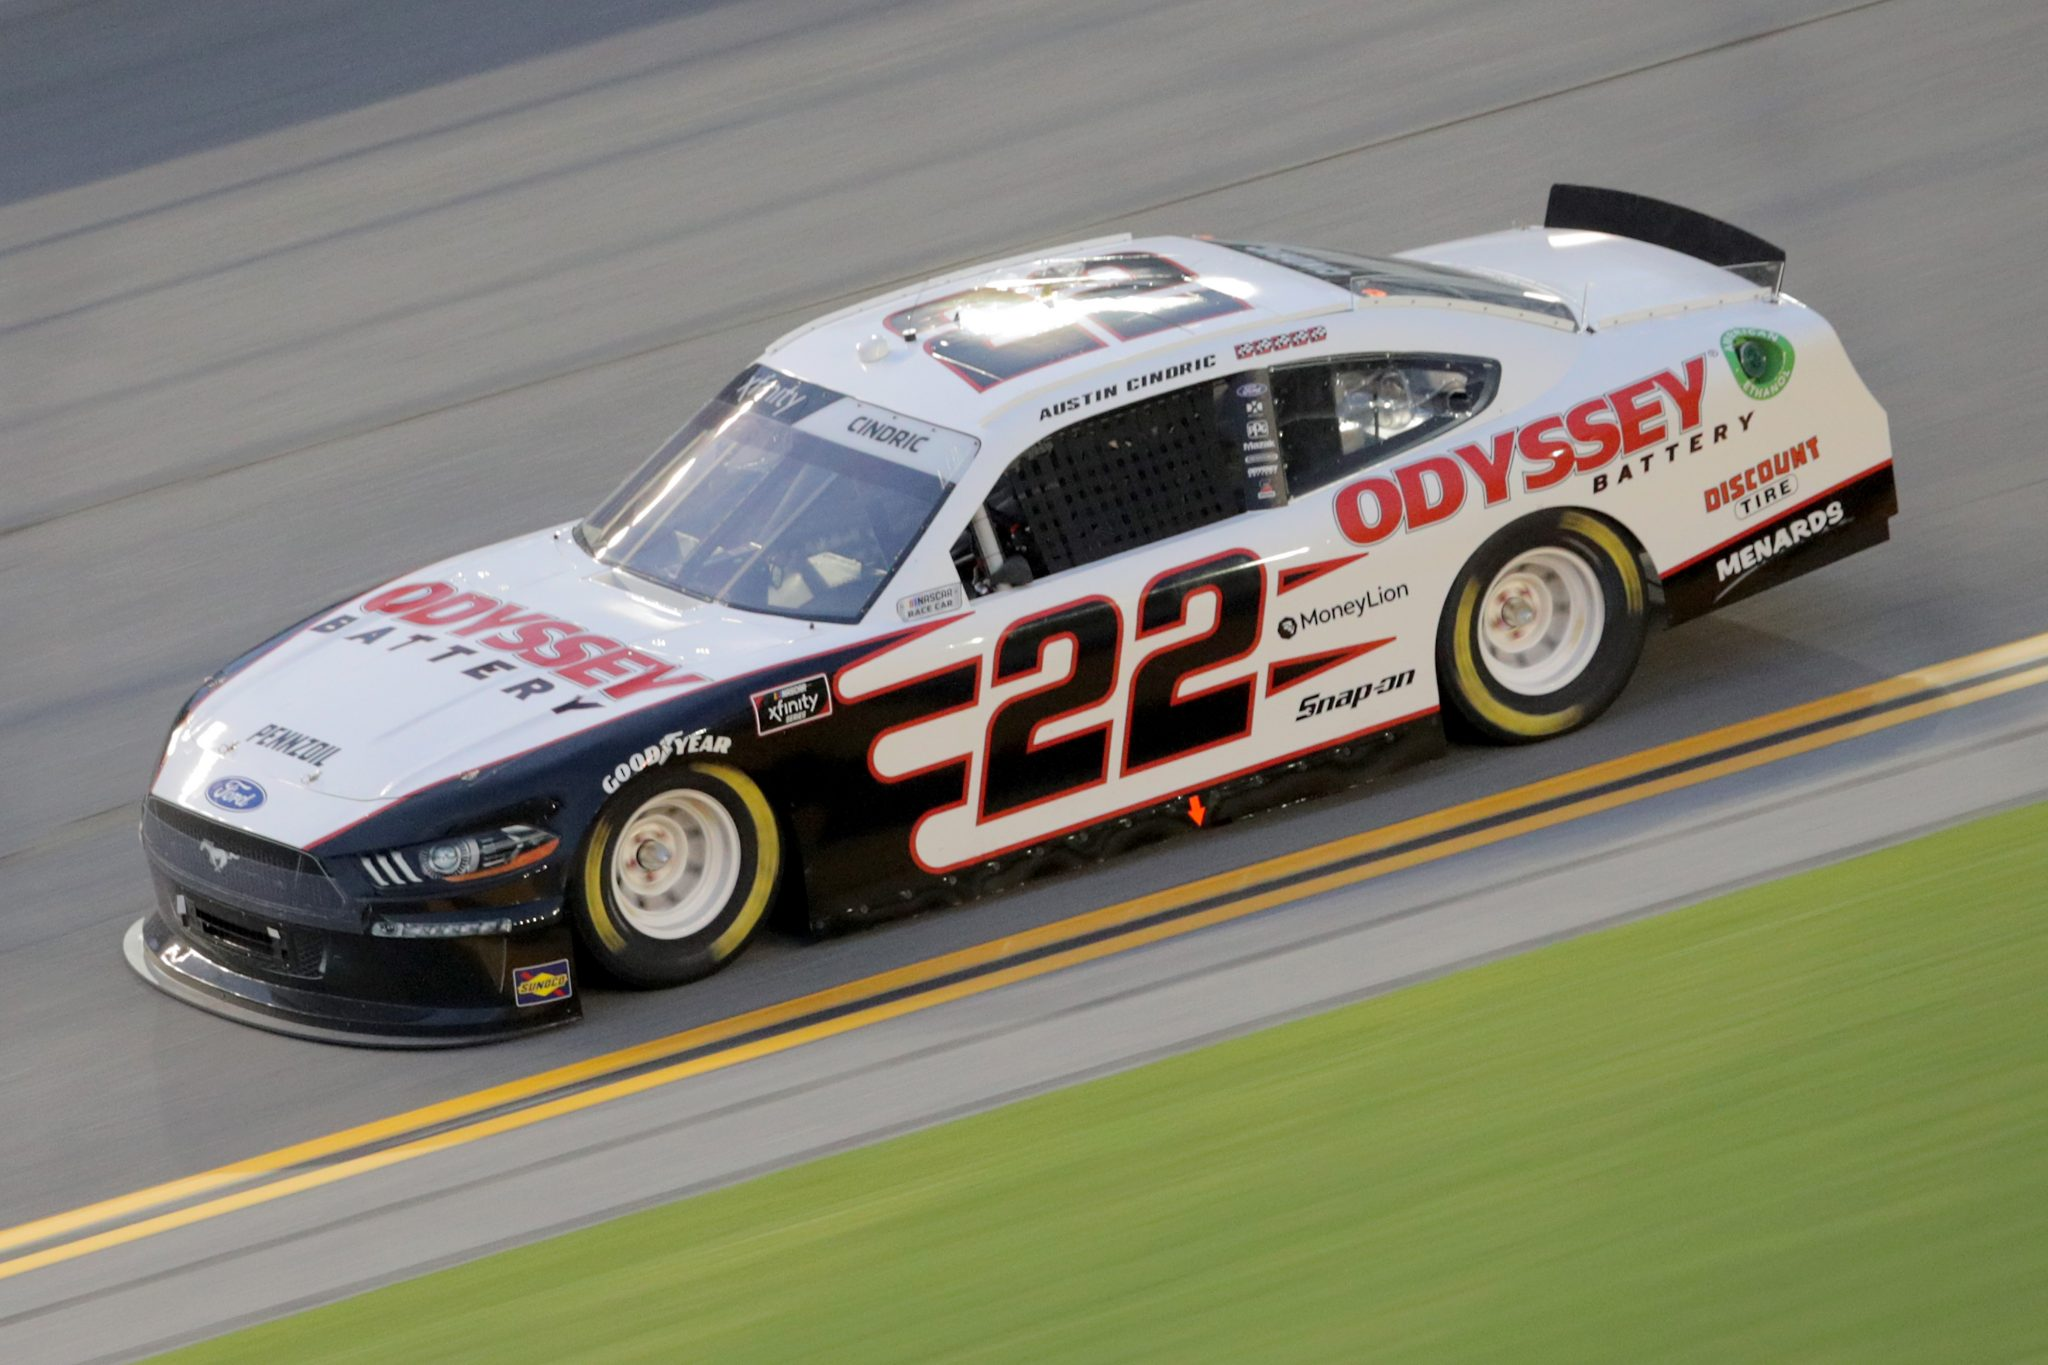 DAYTONA BEACH, FLORIDA - AUGUST 28: Austin Cindric, driver of the #22 Odyssey Battery Ford, drives during the NASCAR Xfinity Series Wawa 250 Powered by Coca-Cola at Daytona International Speedway on August 28, 2020 in Daytona Beach, Florida. (Photo by Chris Graythen/Getty Images) | Getty Images